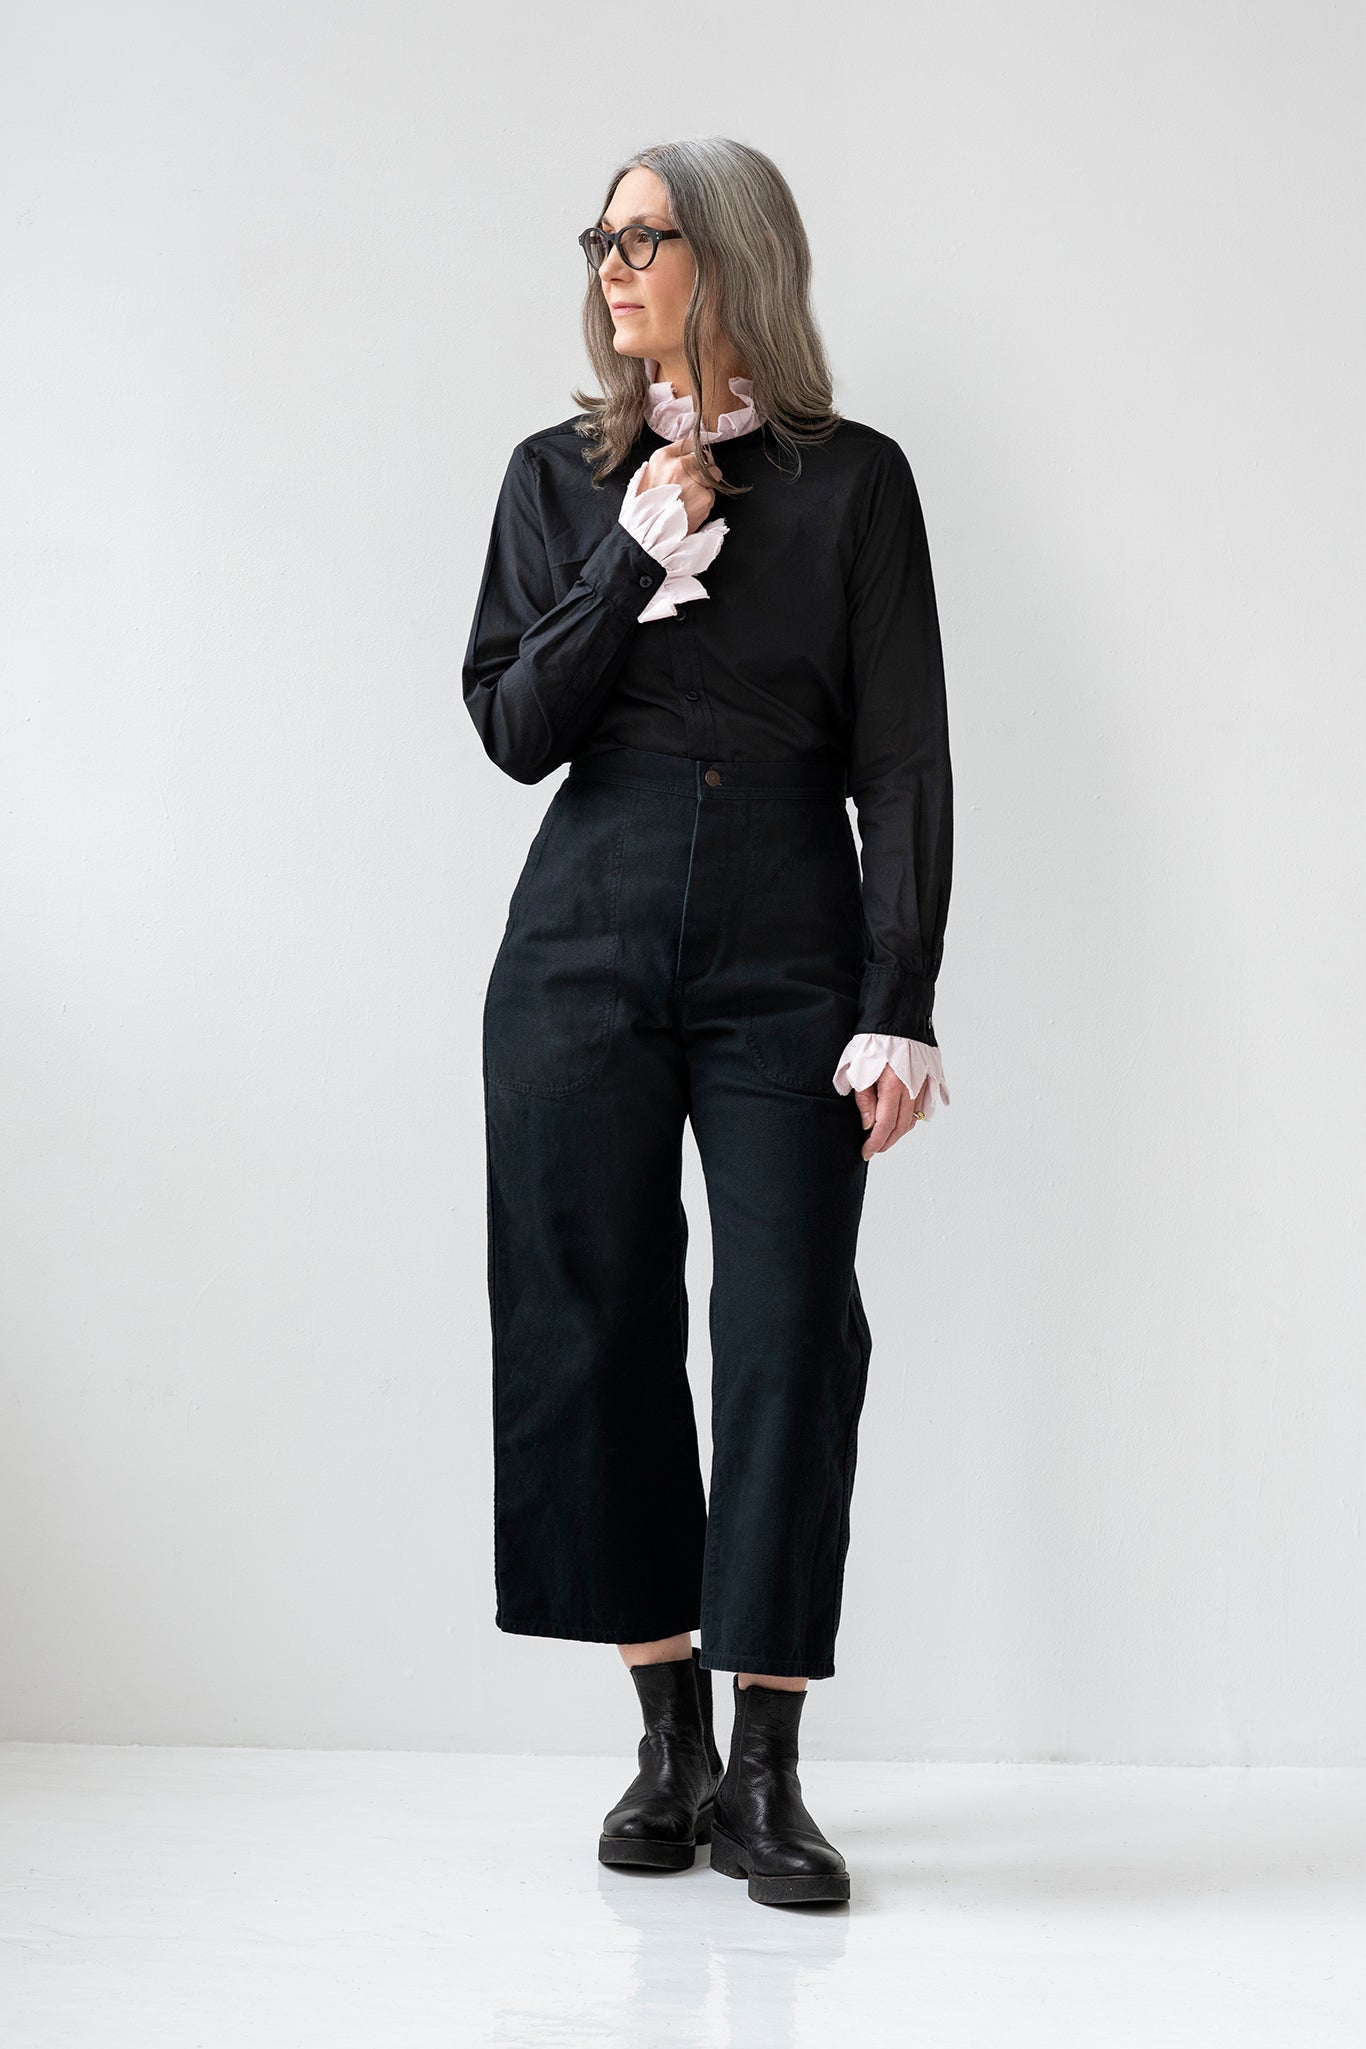 UQNATU Black Sailor Pant